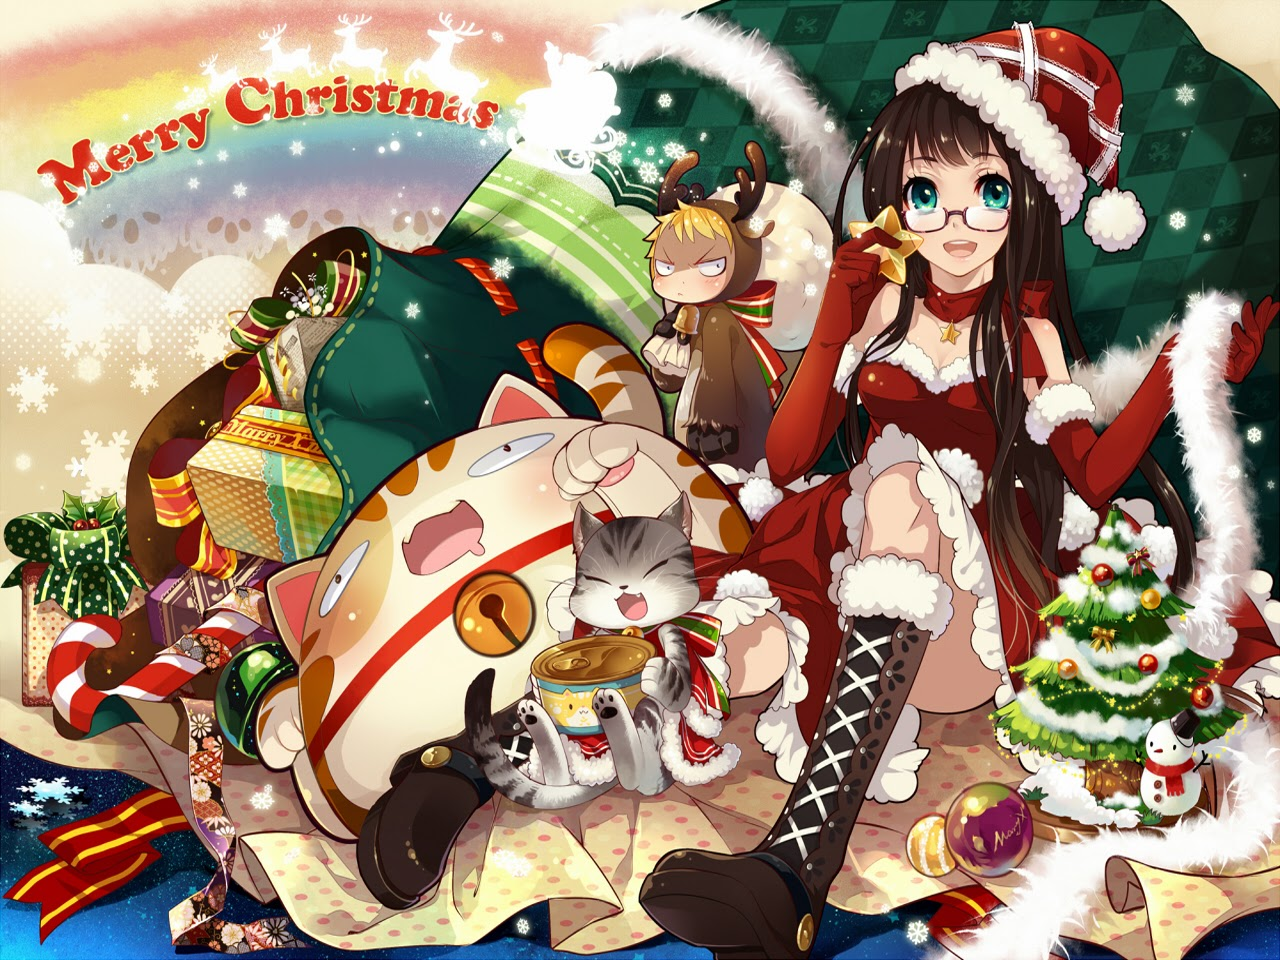 Anime Christmas Girls 8 Free Hd Wallpaper Animewp Com